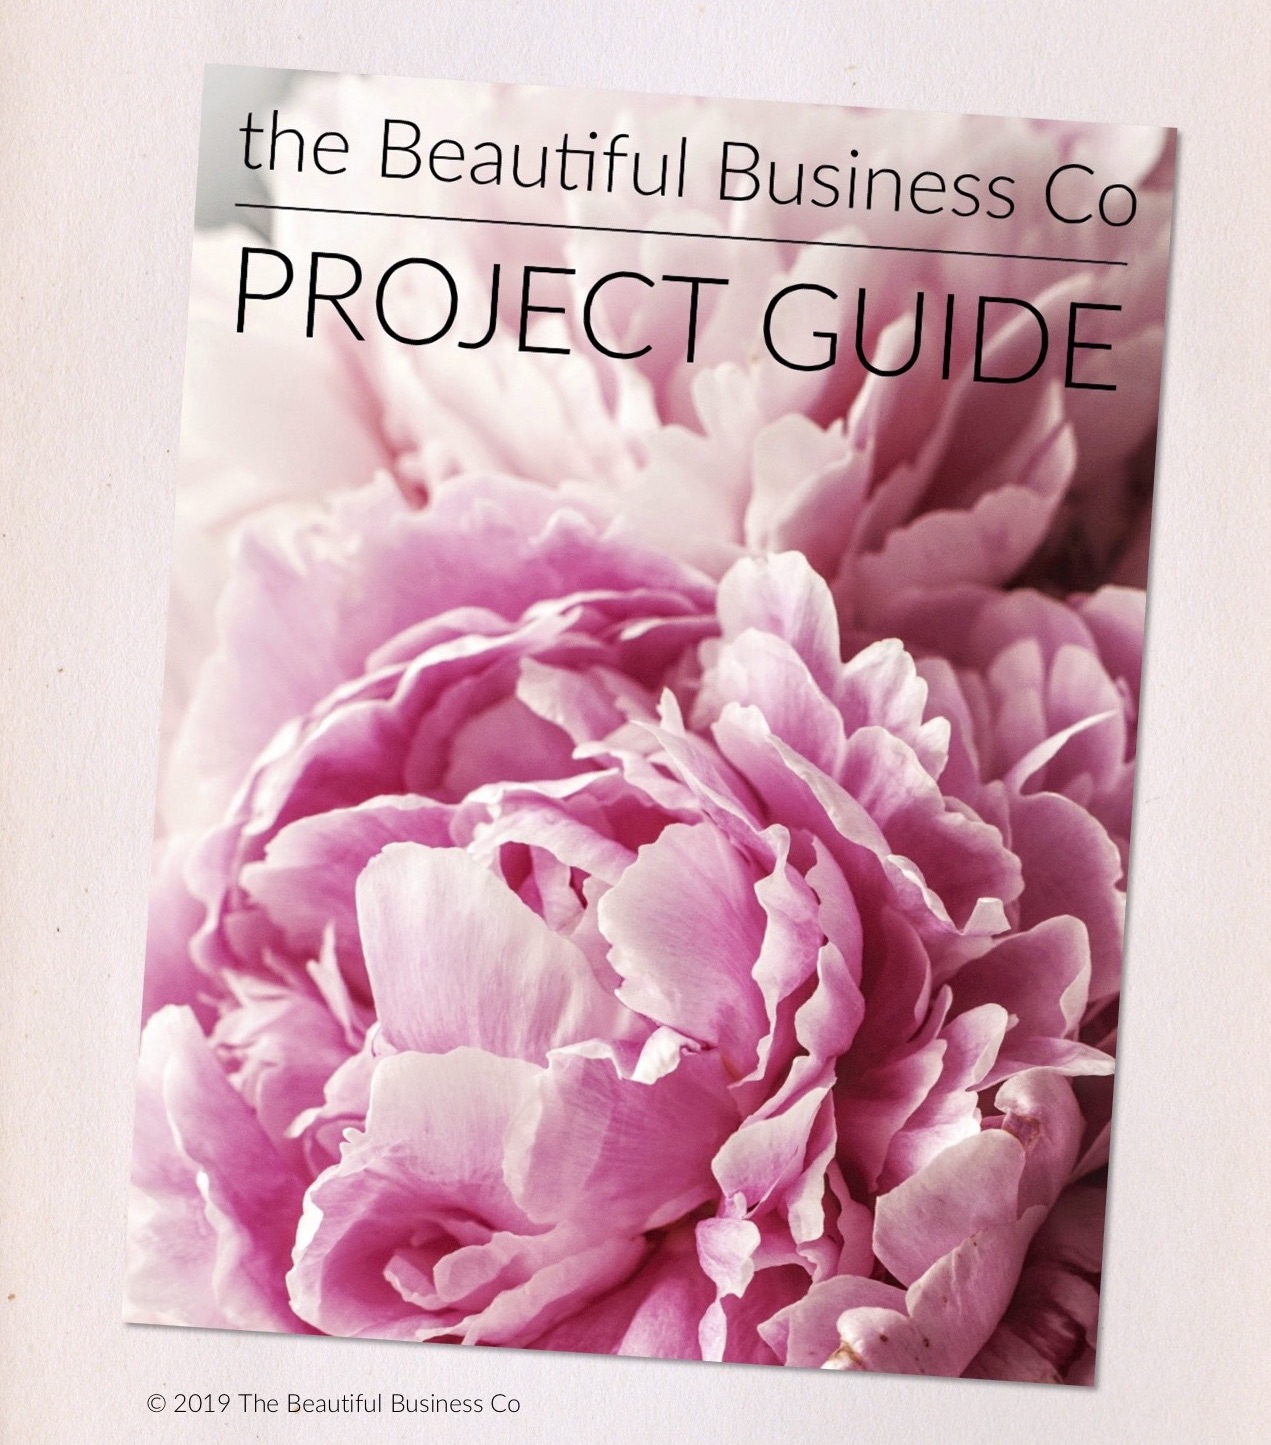 get the guide - A simple but informative guide for what to expect during your project, with tips for choosing a developer, designer and stylist.Want a guide for your business? Let's chat!